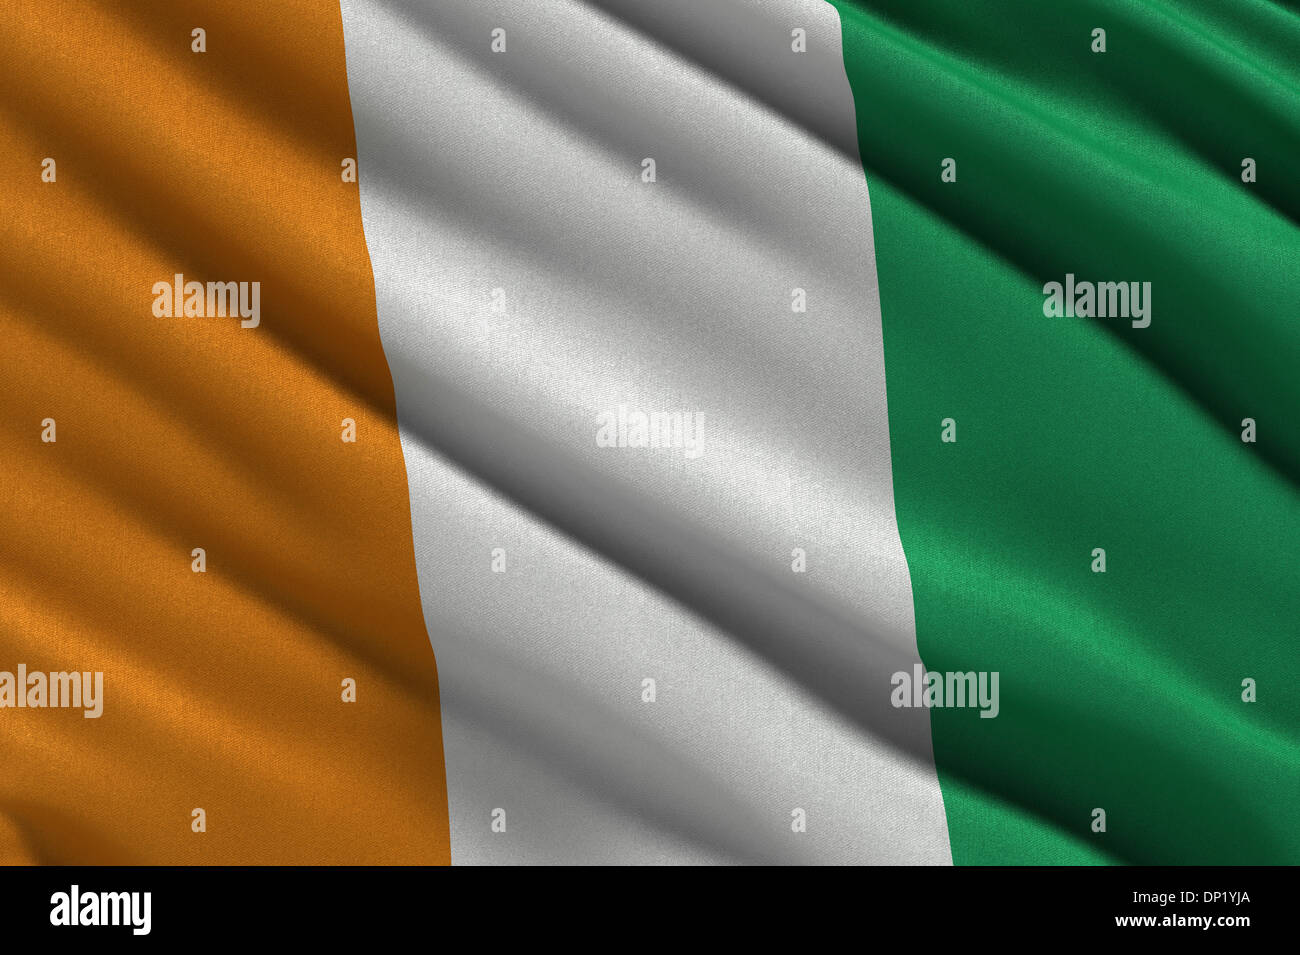 Flag of the Ivory Coast or Republic of Côte d'Ivoire waving in the wind - Stock Image